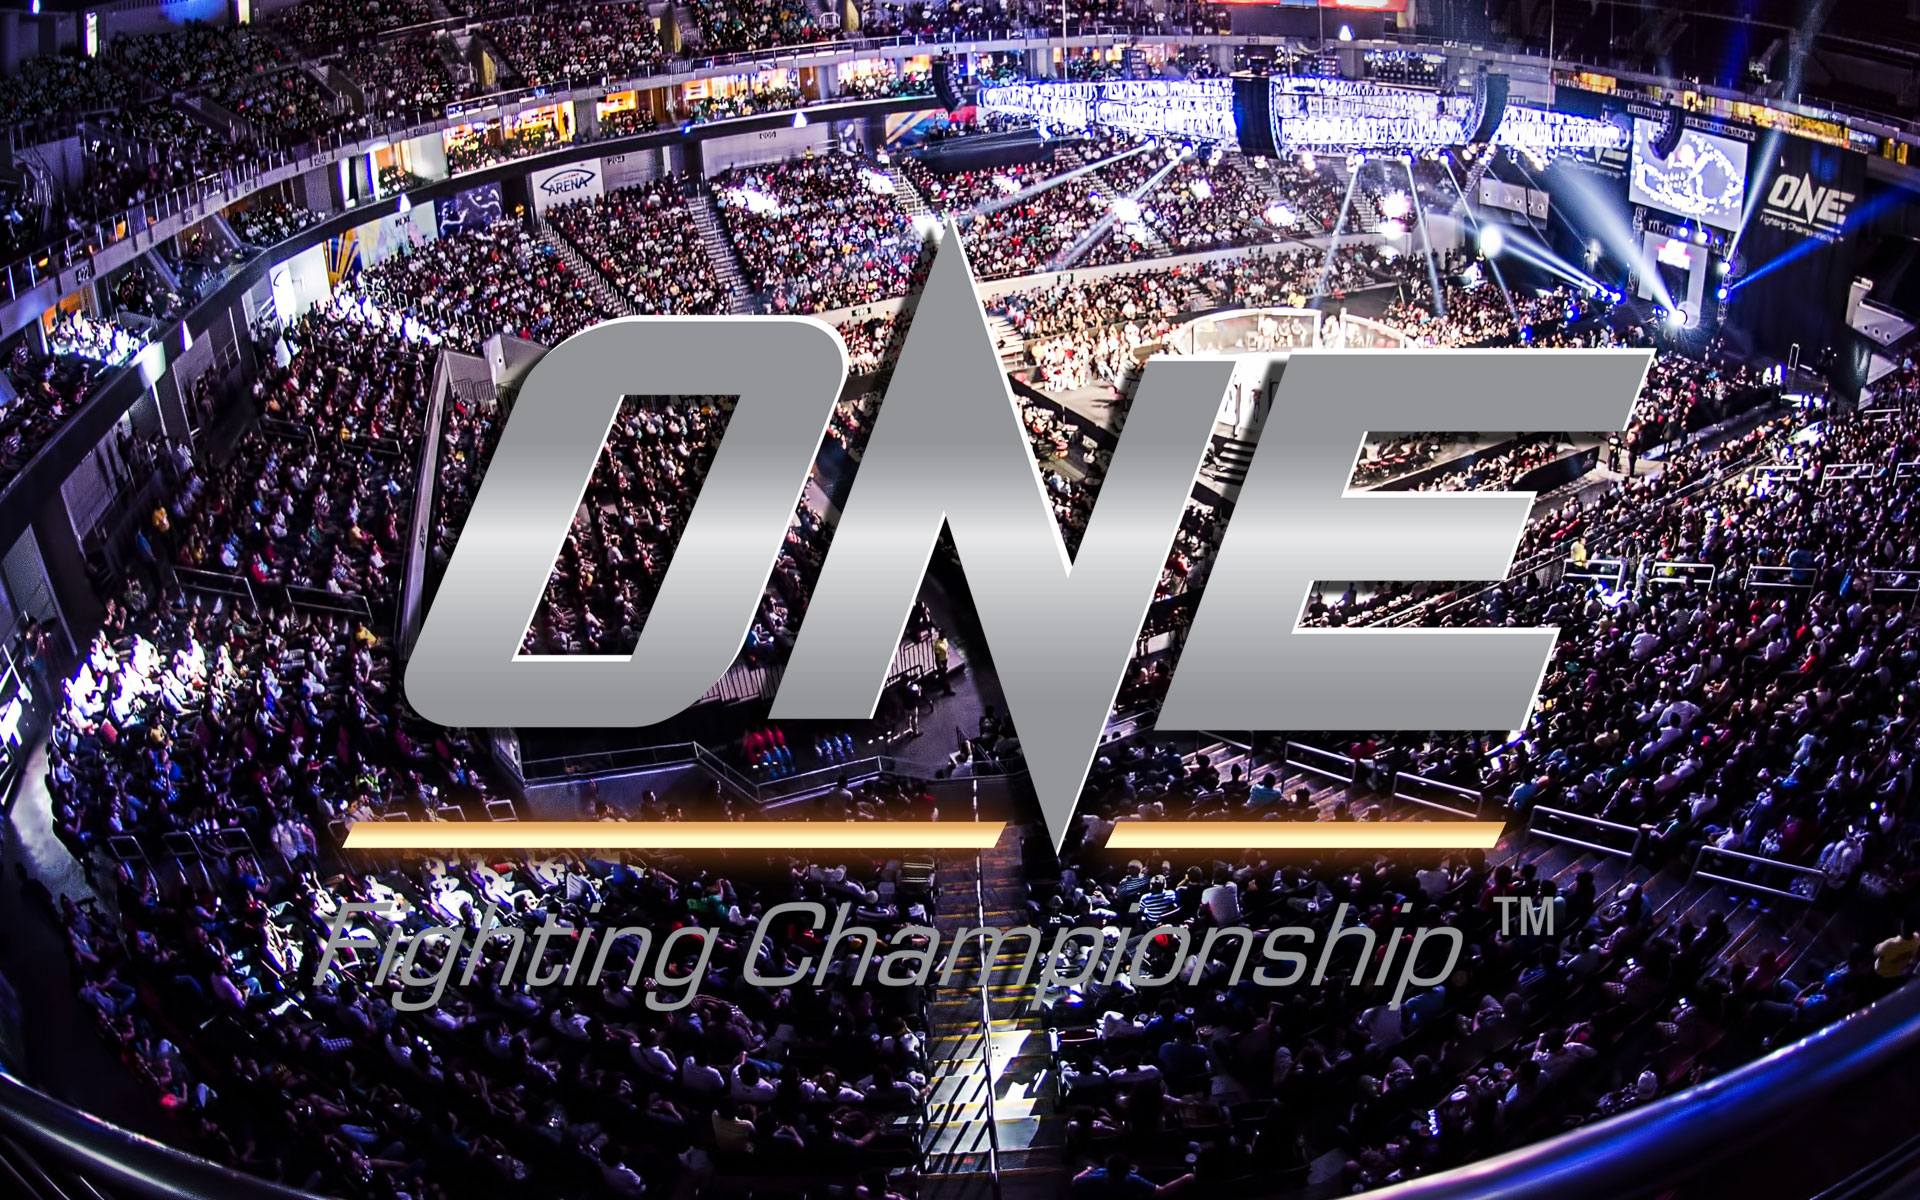 One Championship: Fists of Fury 3